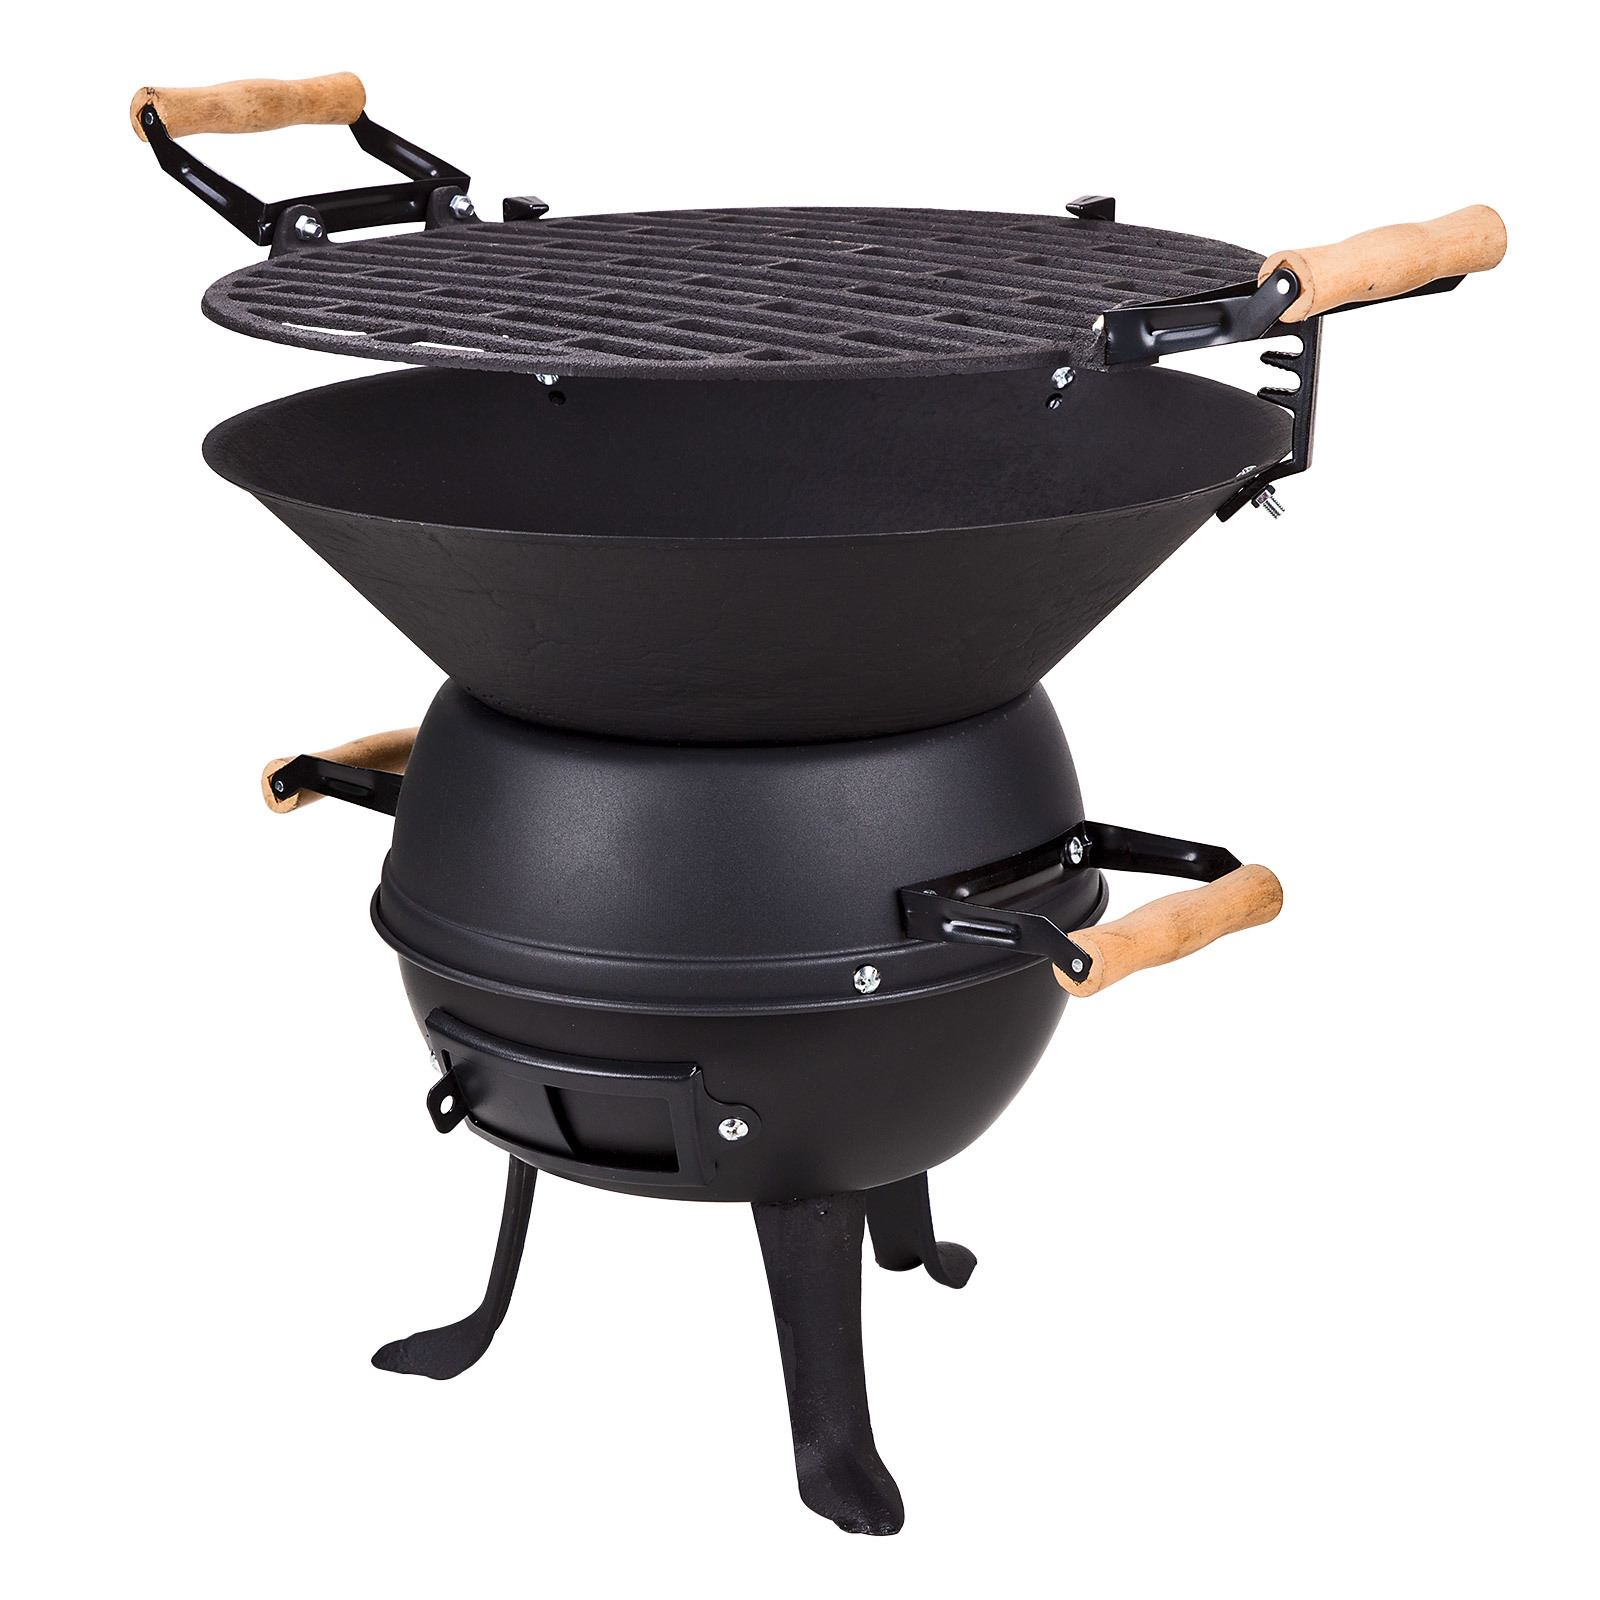 grillfass grill holzkohlegrill barbecue bbq grillrost 35cm new orleans ebay. Black Bedroom Furniture Sets. Home Design Ideas